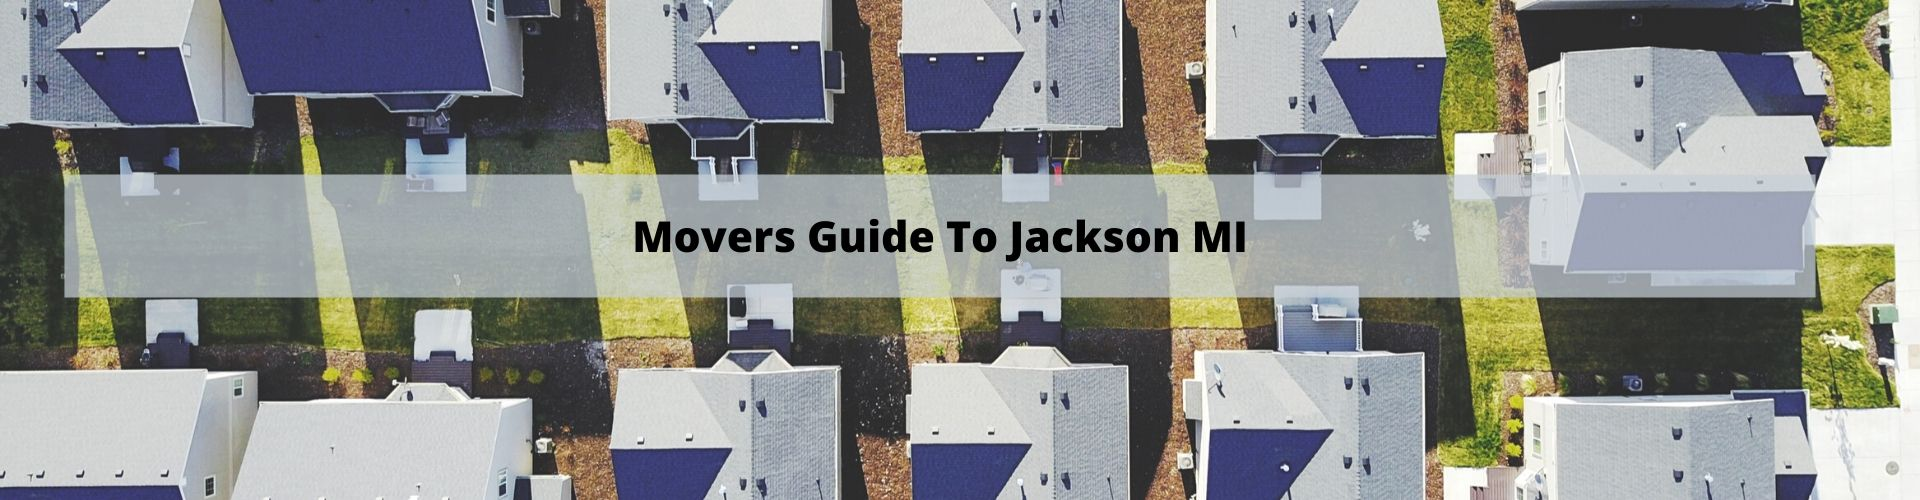 Movers Guide to Jackson MI